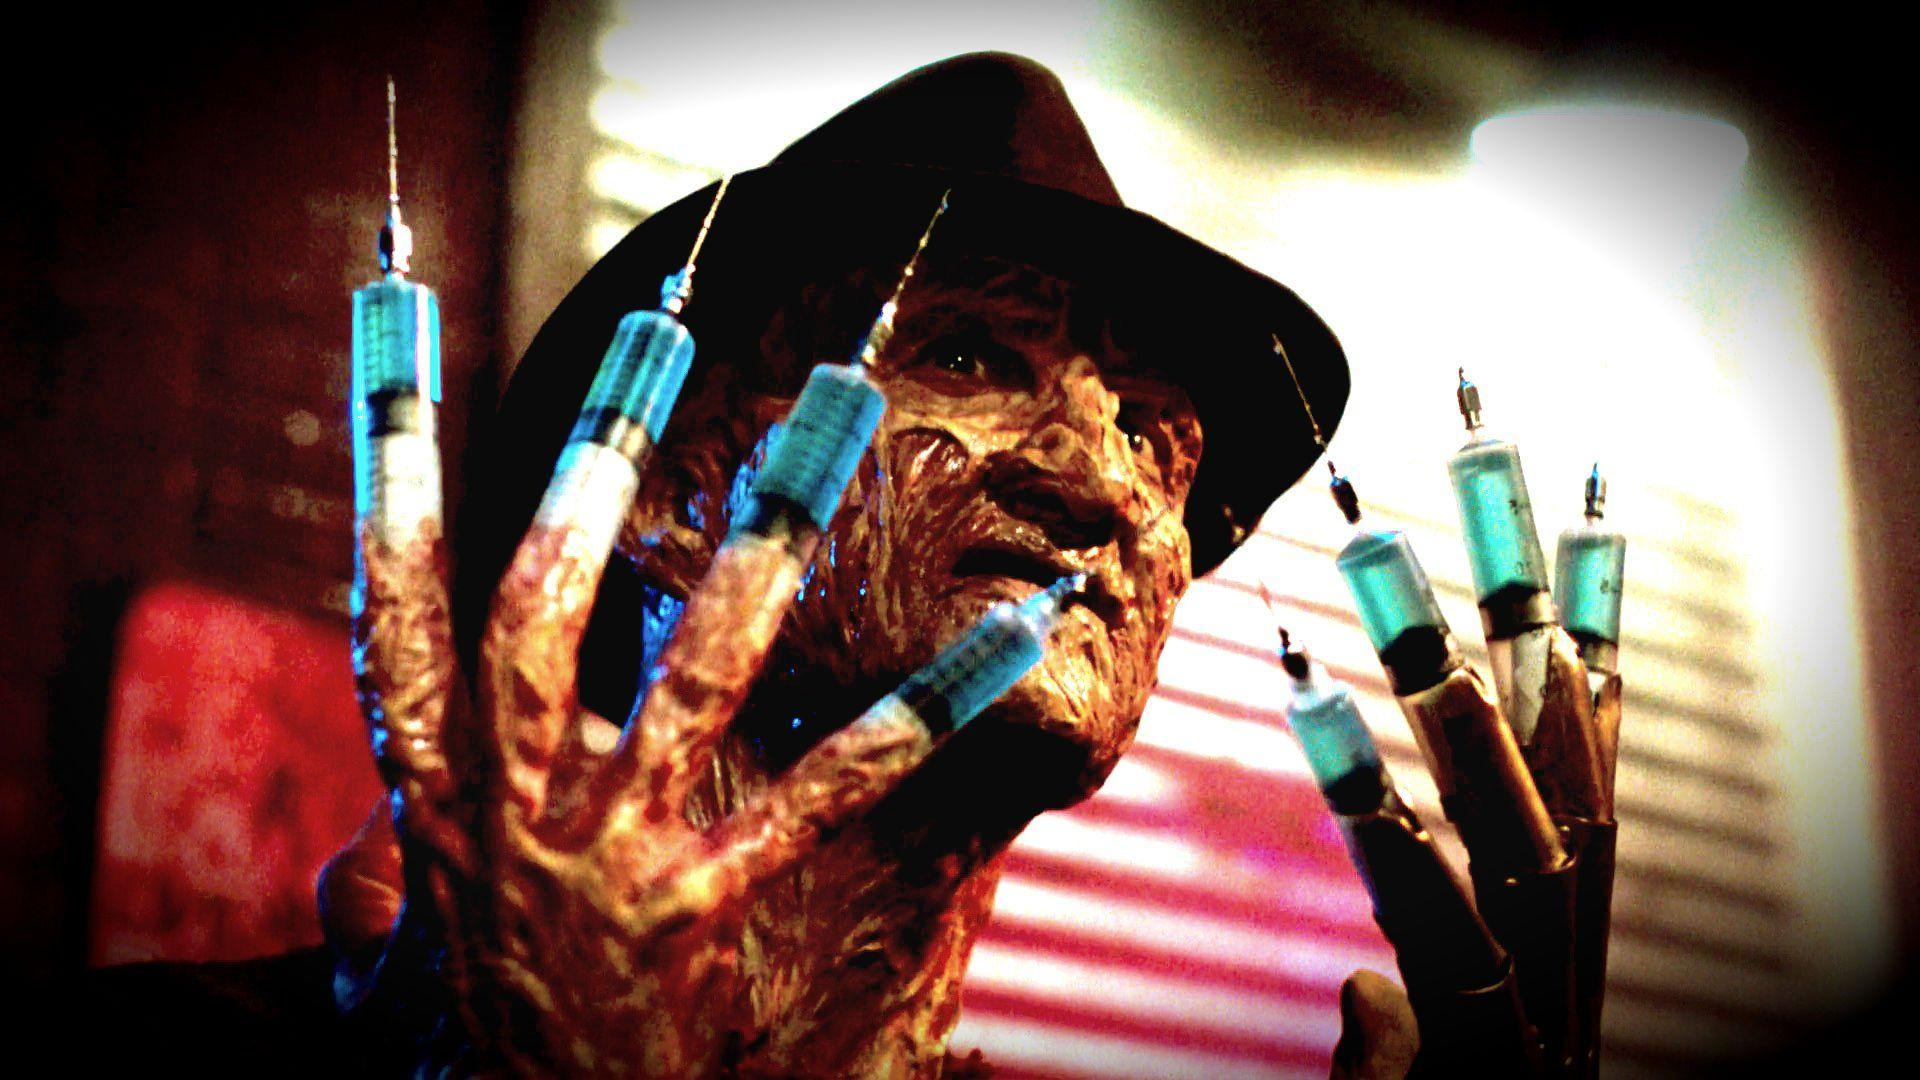 A NIGHTMARE ON ELM STREET dark horror thriller ey wallpapers